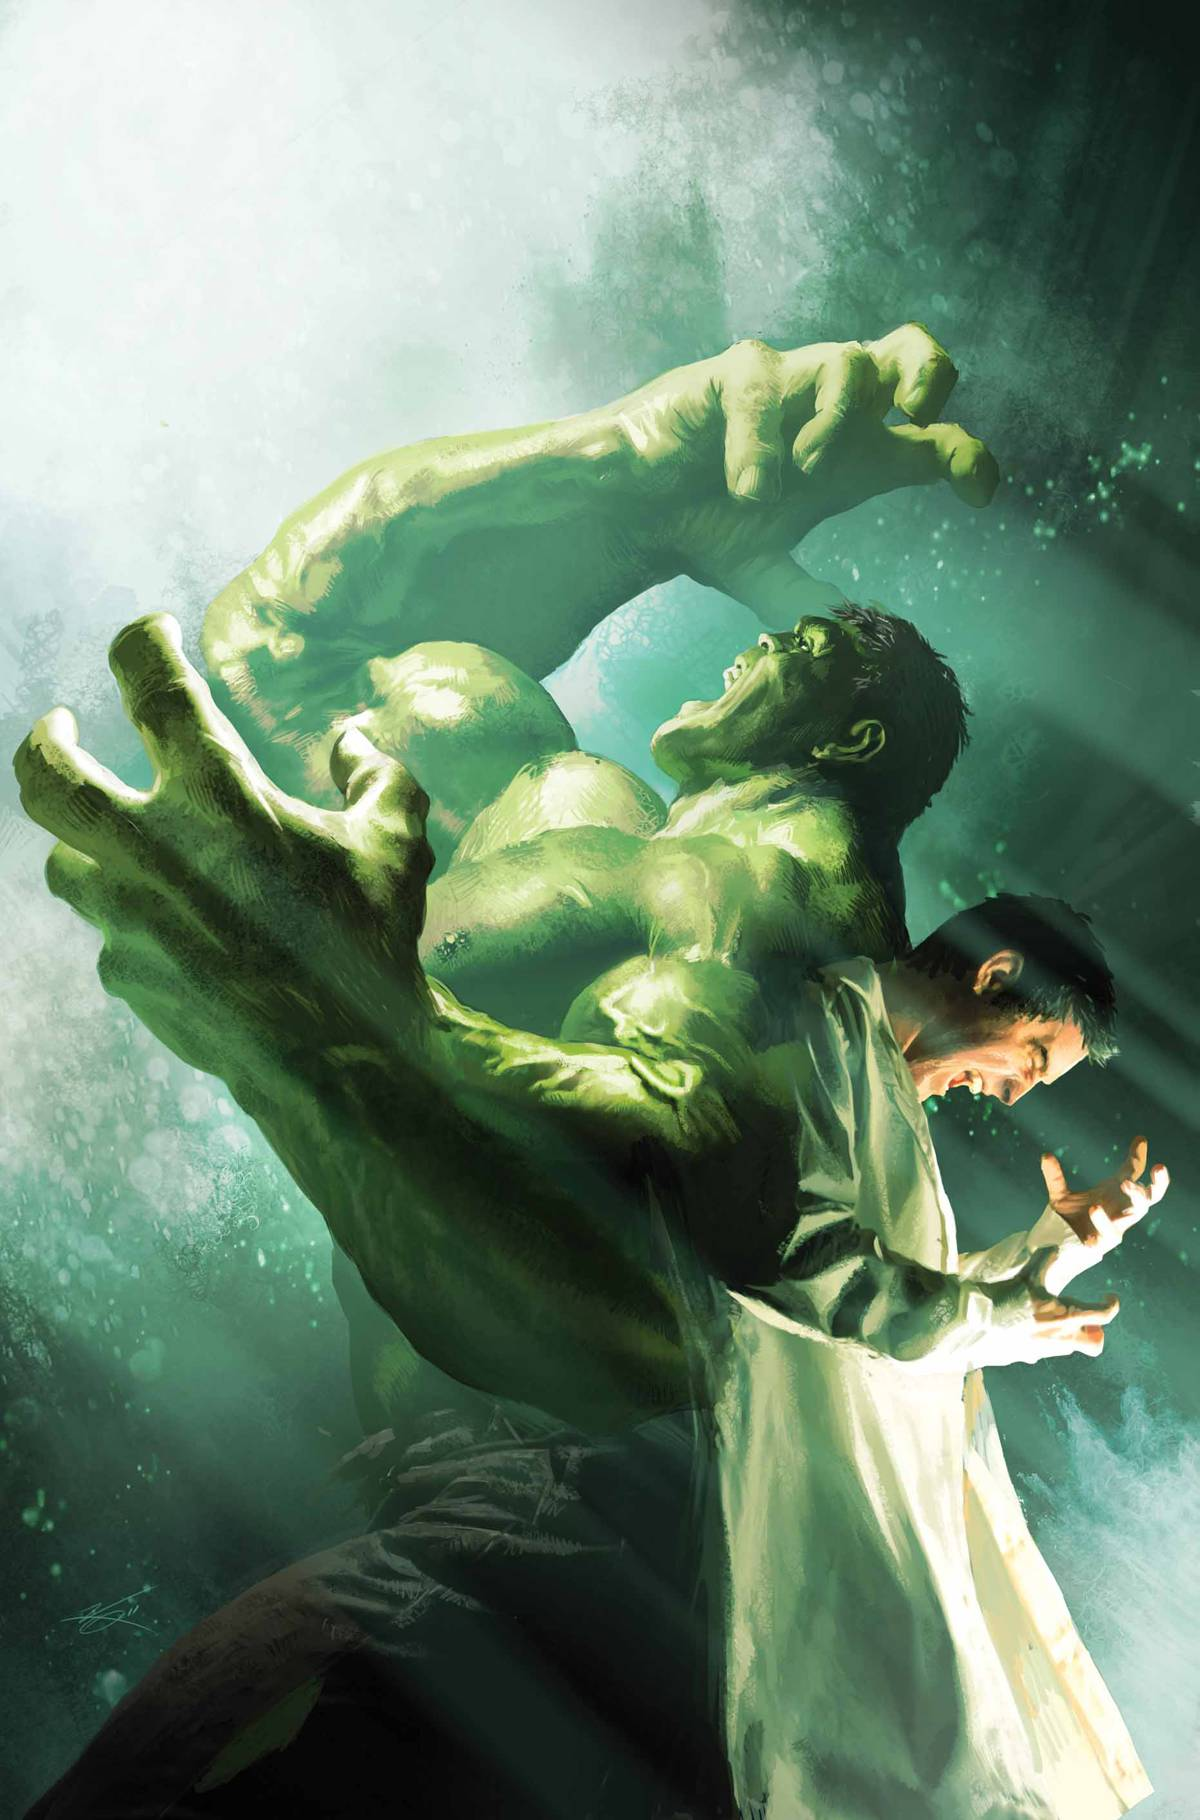 Incredible Hulk poster by Michael Kormarck